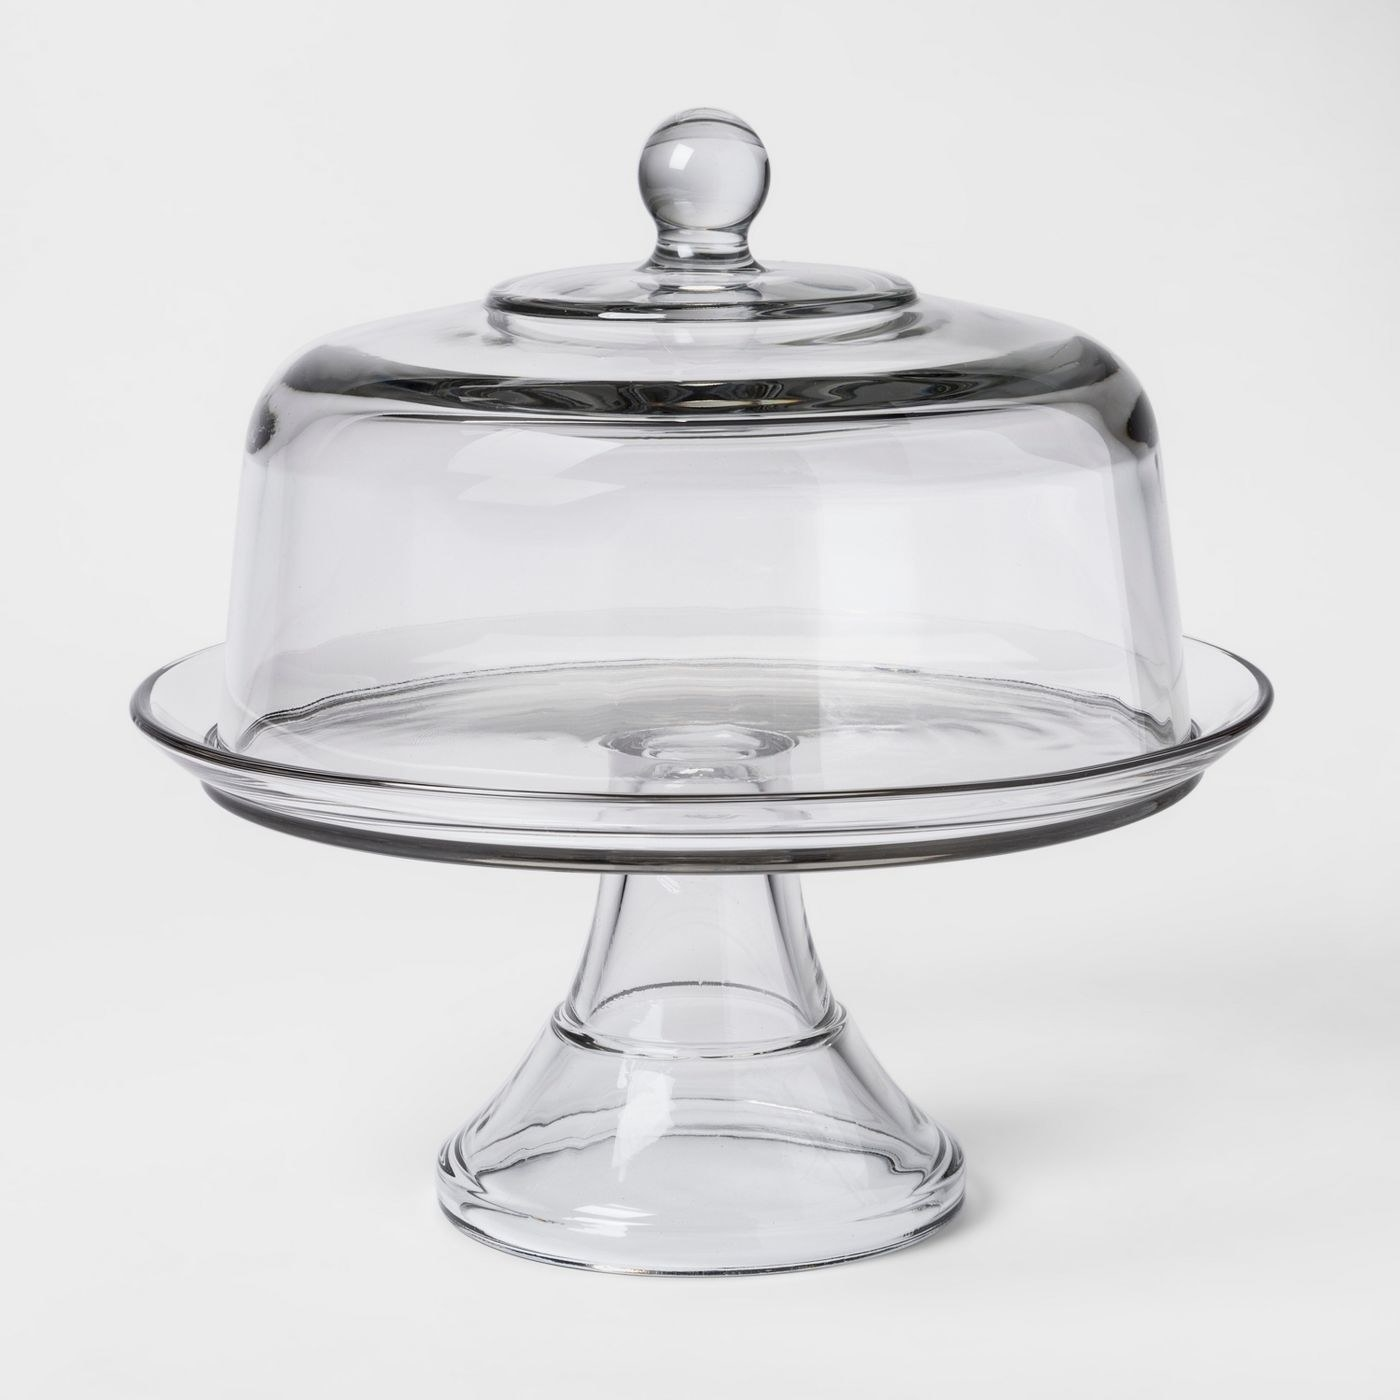 a class cake stand  with a glass covering dome